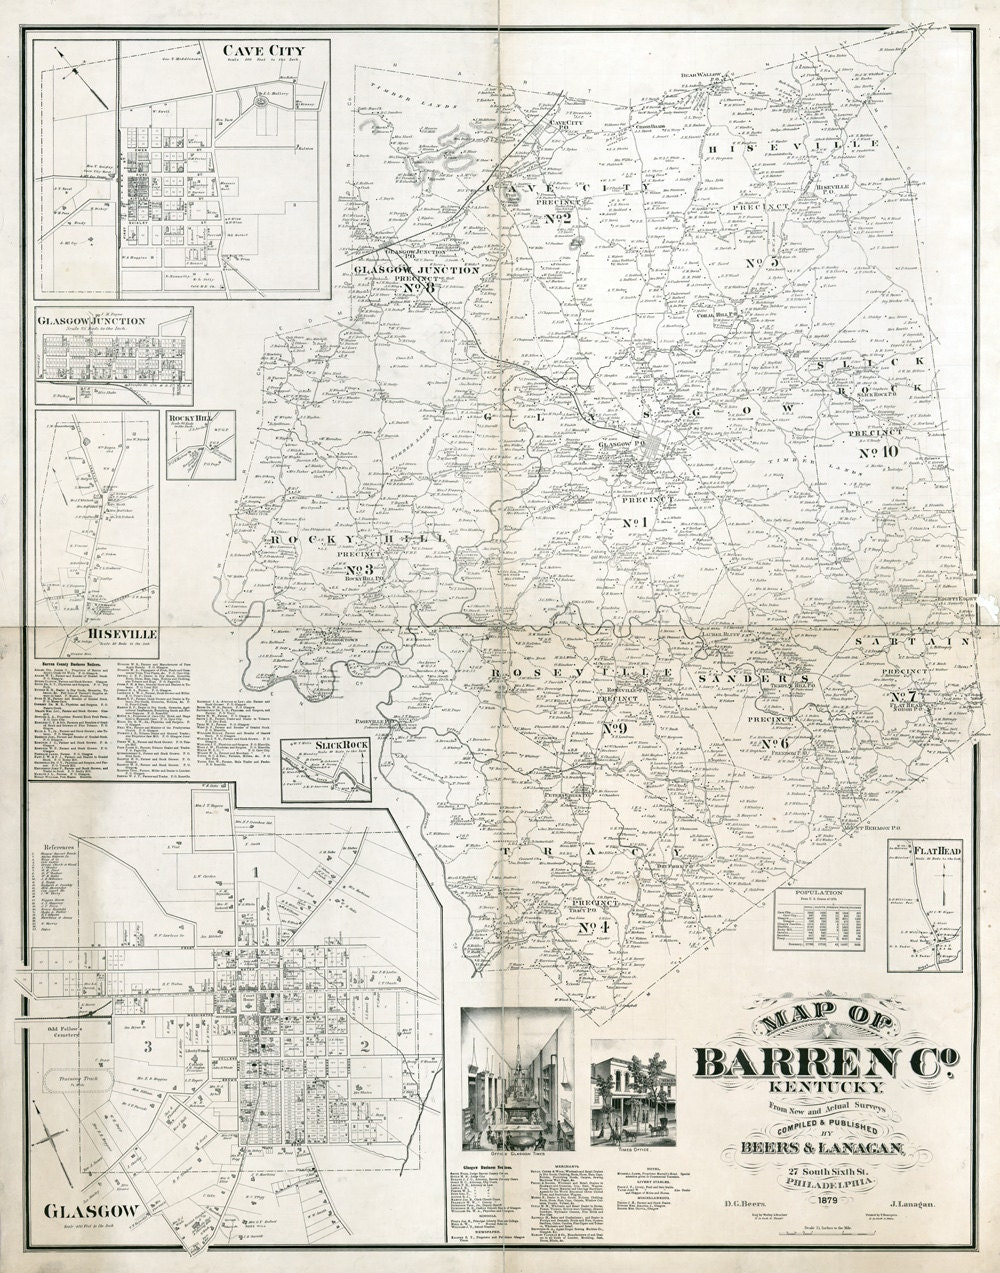 1879 Map Of Barren County Kentucky Glasgow. Best Friendship Messages Ups Vehicle Tracking. Insurance Broker Dallas Medical Missions Trip. Top Music Schools In New York. Face Laser Hair Removal Interest Credit Cards. Touchdown With Exchange Activesync. Sap Business Software Applications. Free Email Campaign Services G Eazy Tumblr. Auto Insurance Albany Ny Online Courses In Pa